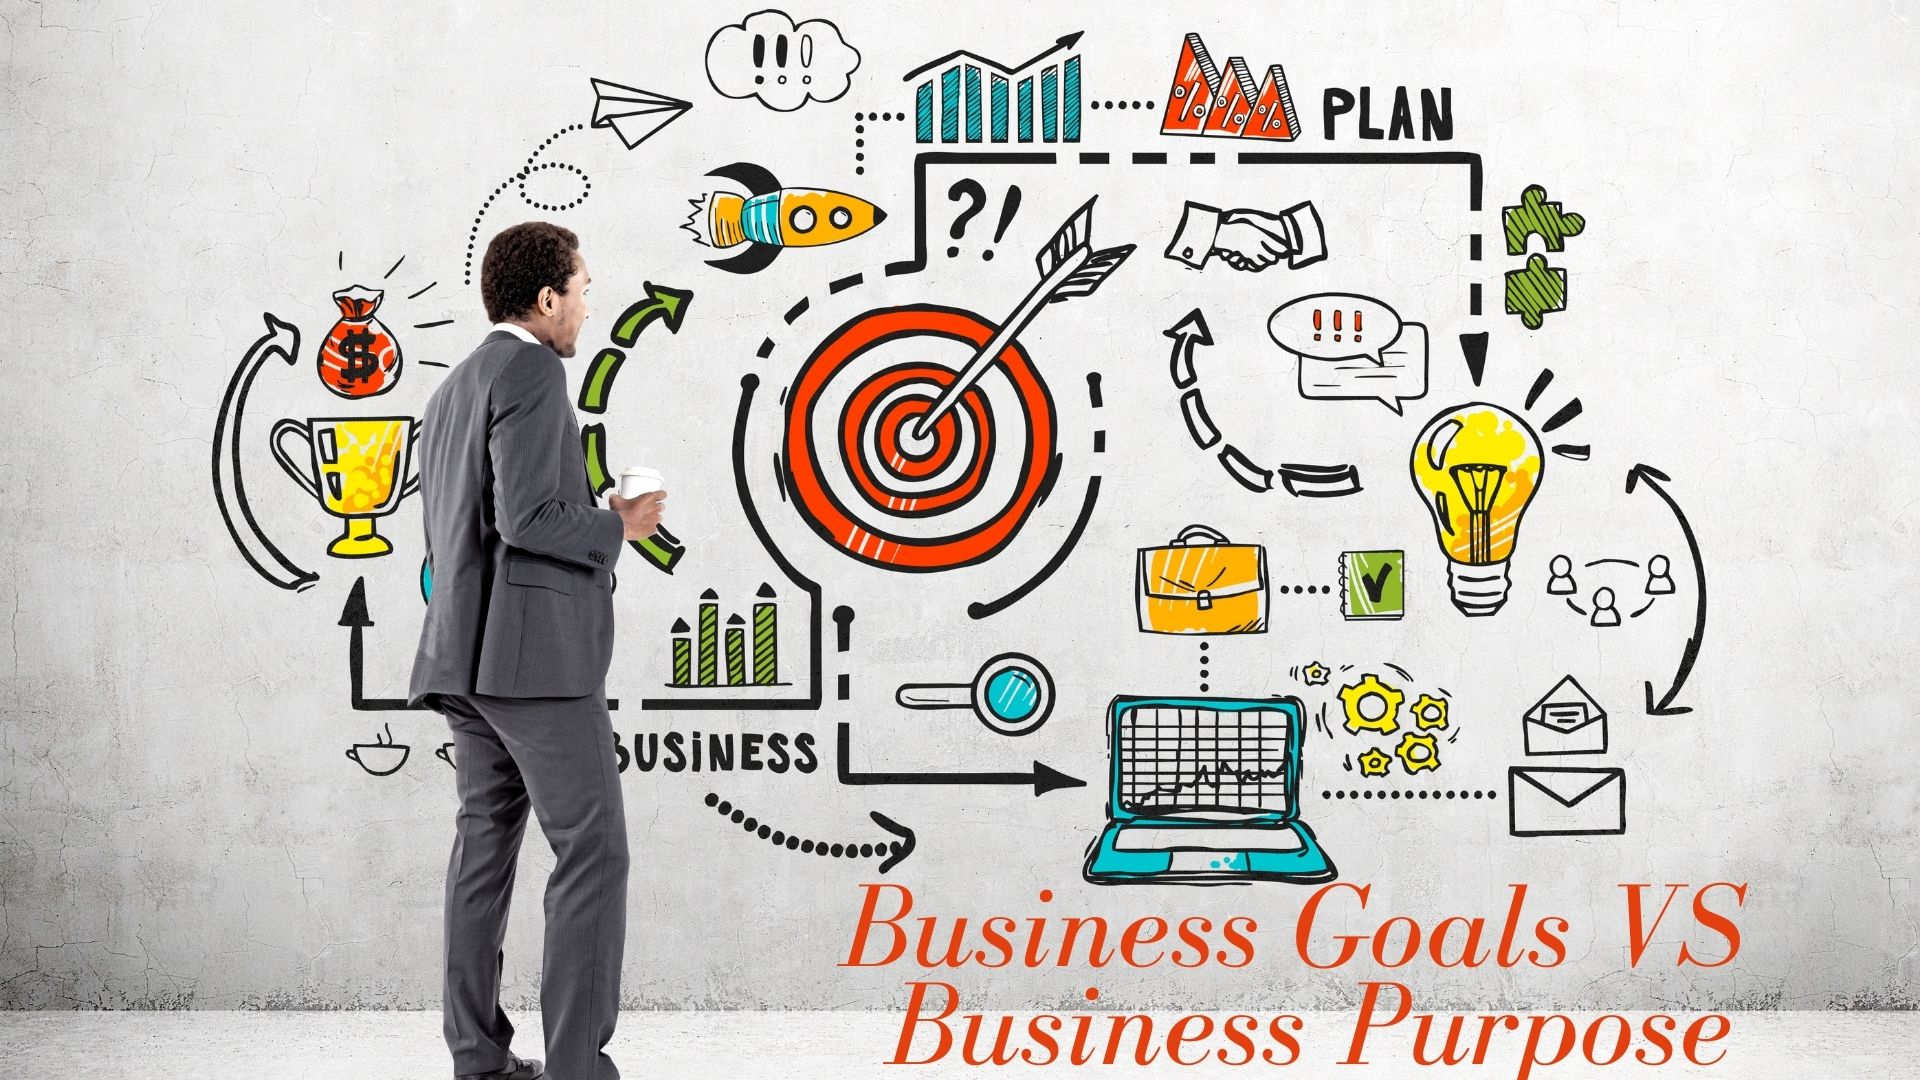 Business Goals vs Business Purpose and how to combine them for success